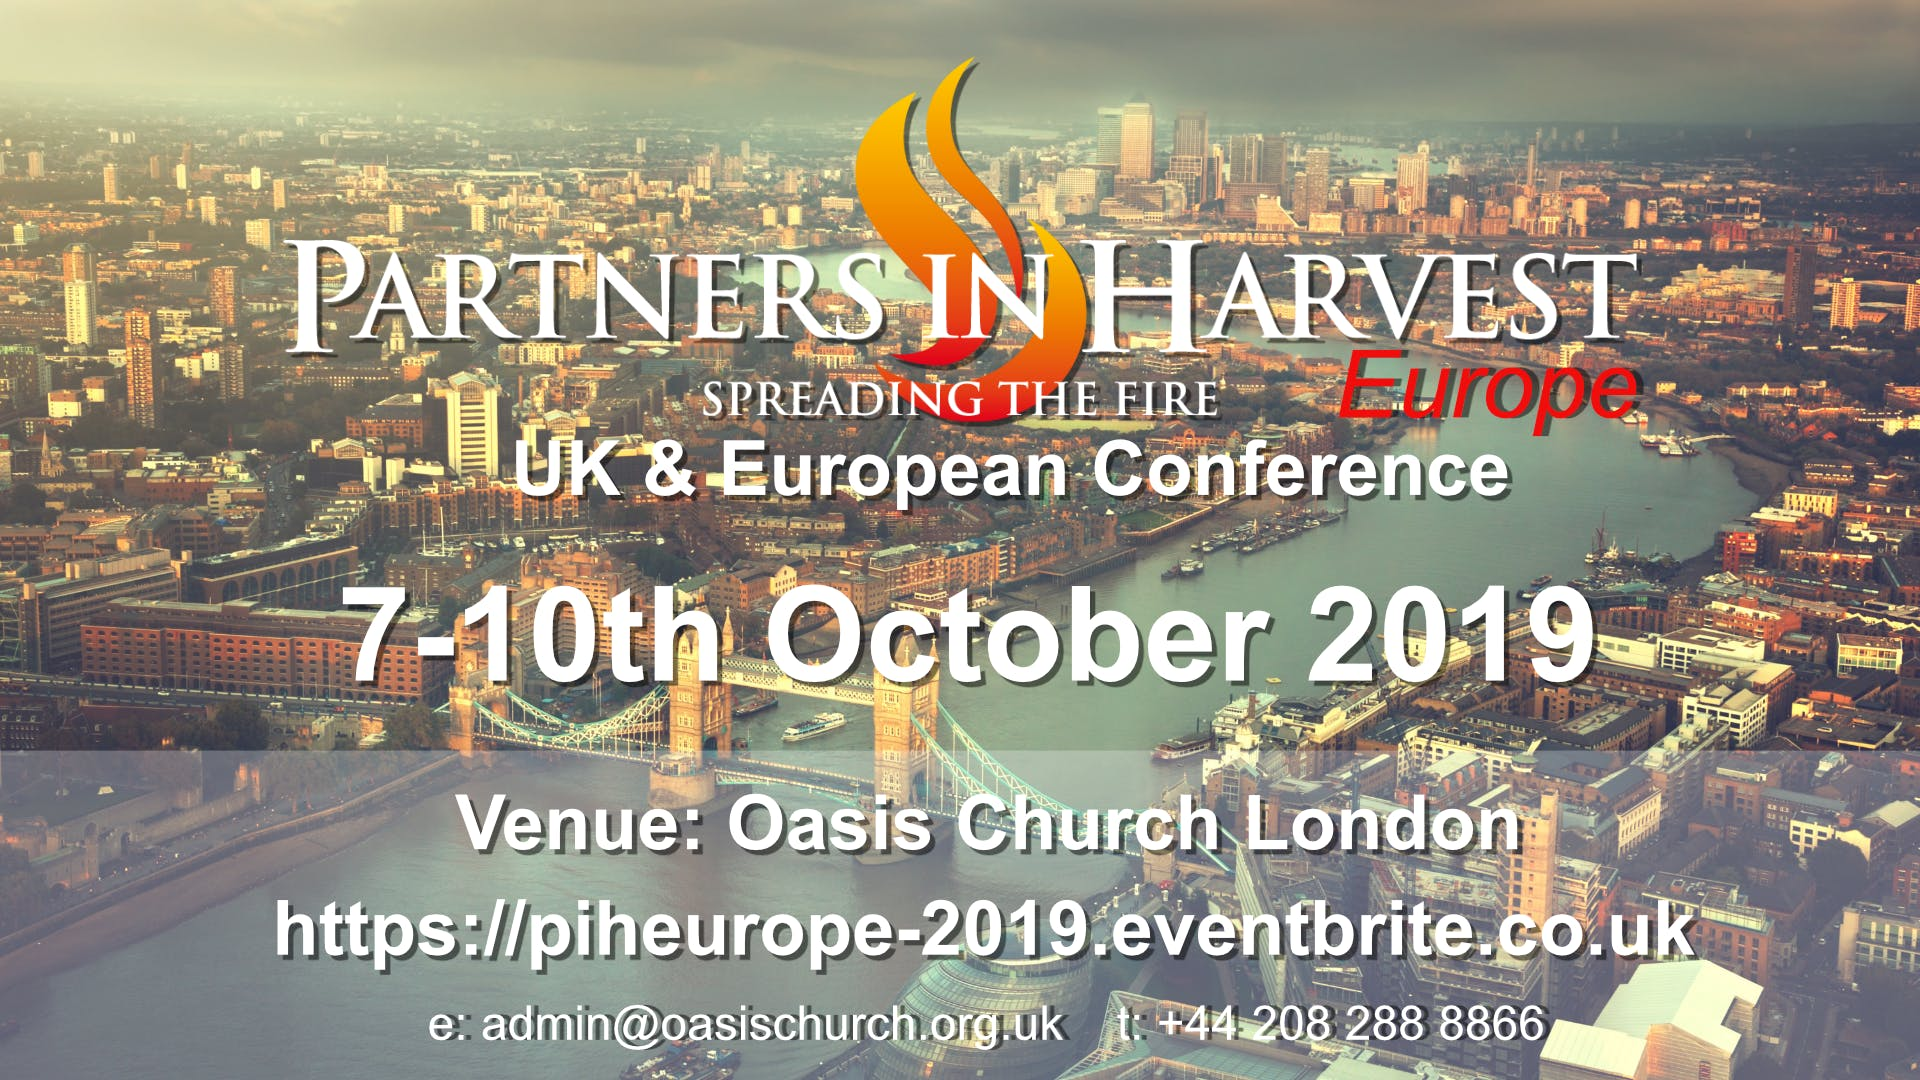 Partners in Harvest Europe: Fall Conference 2019